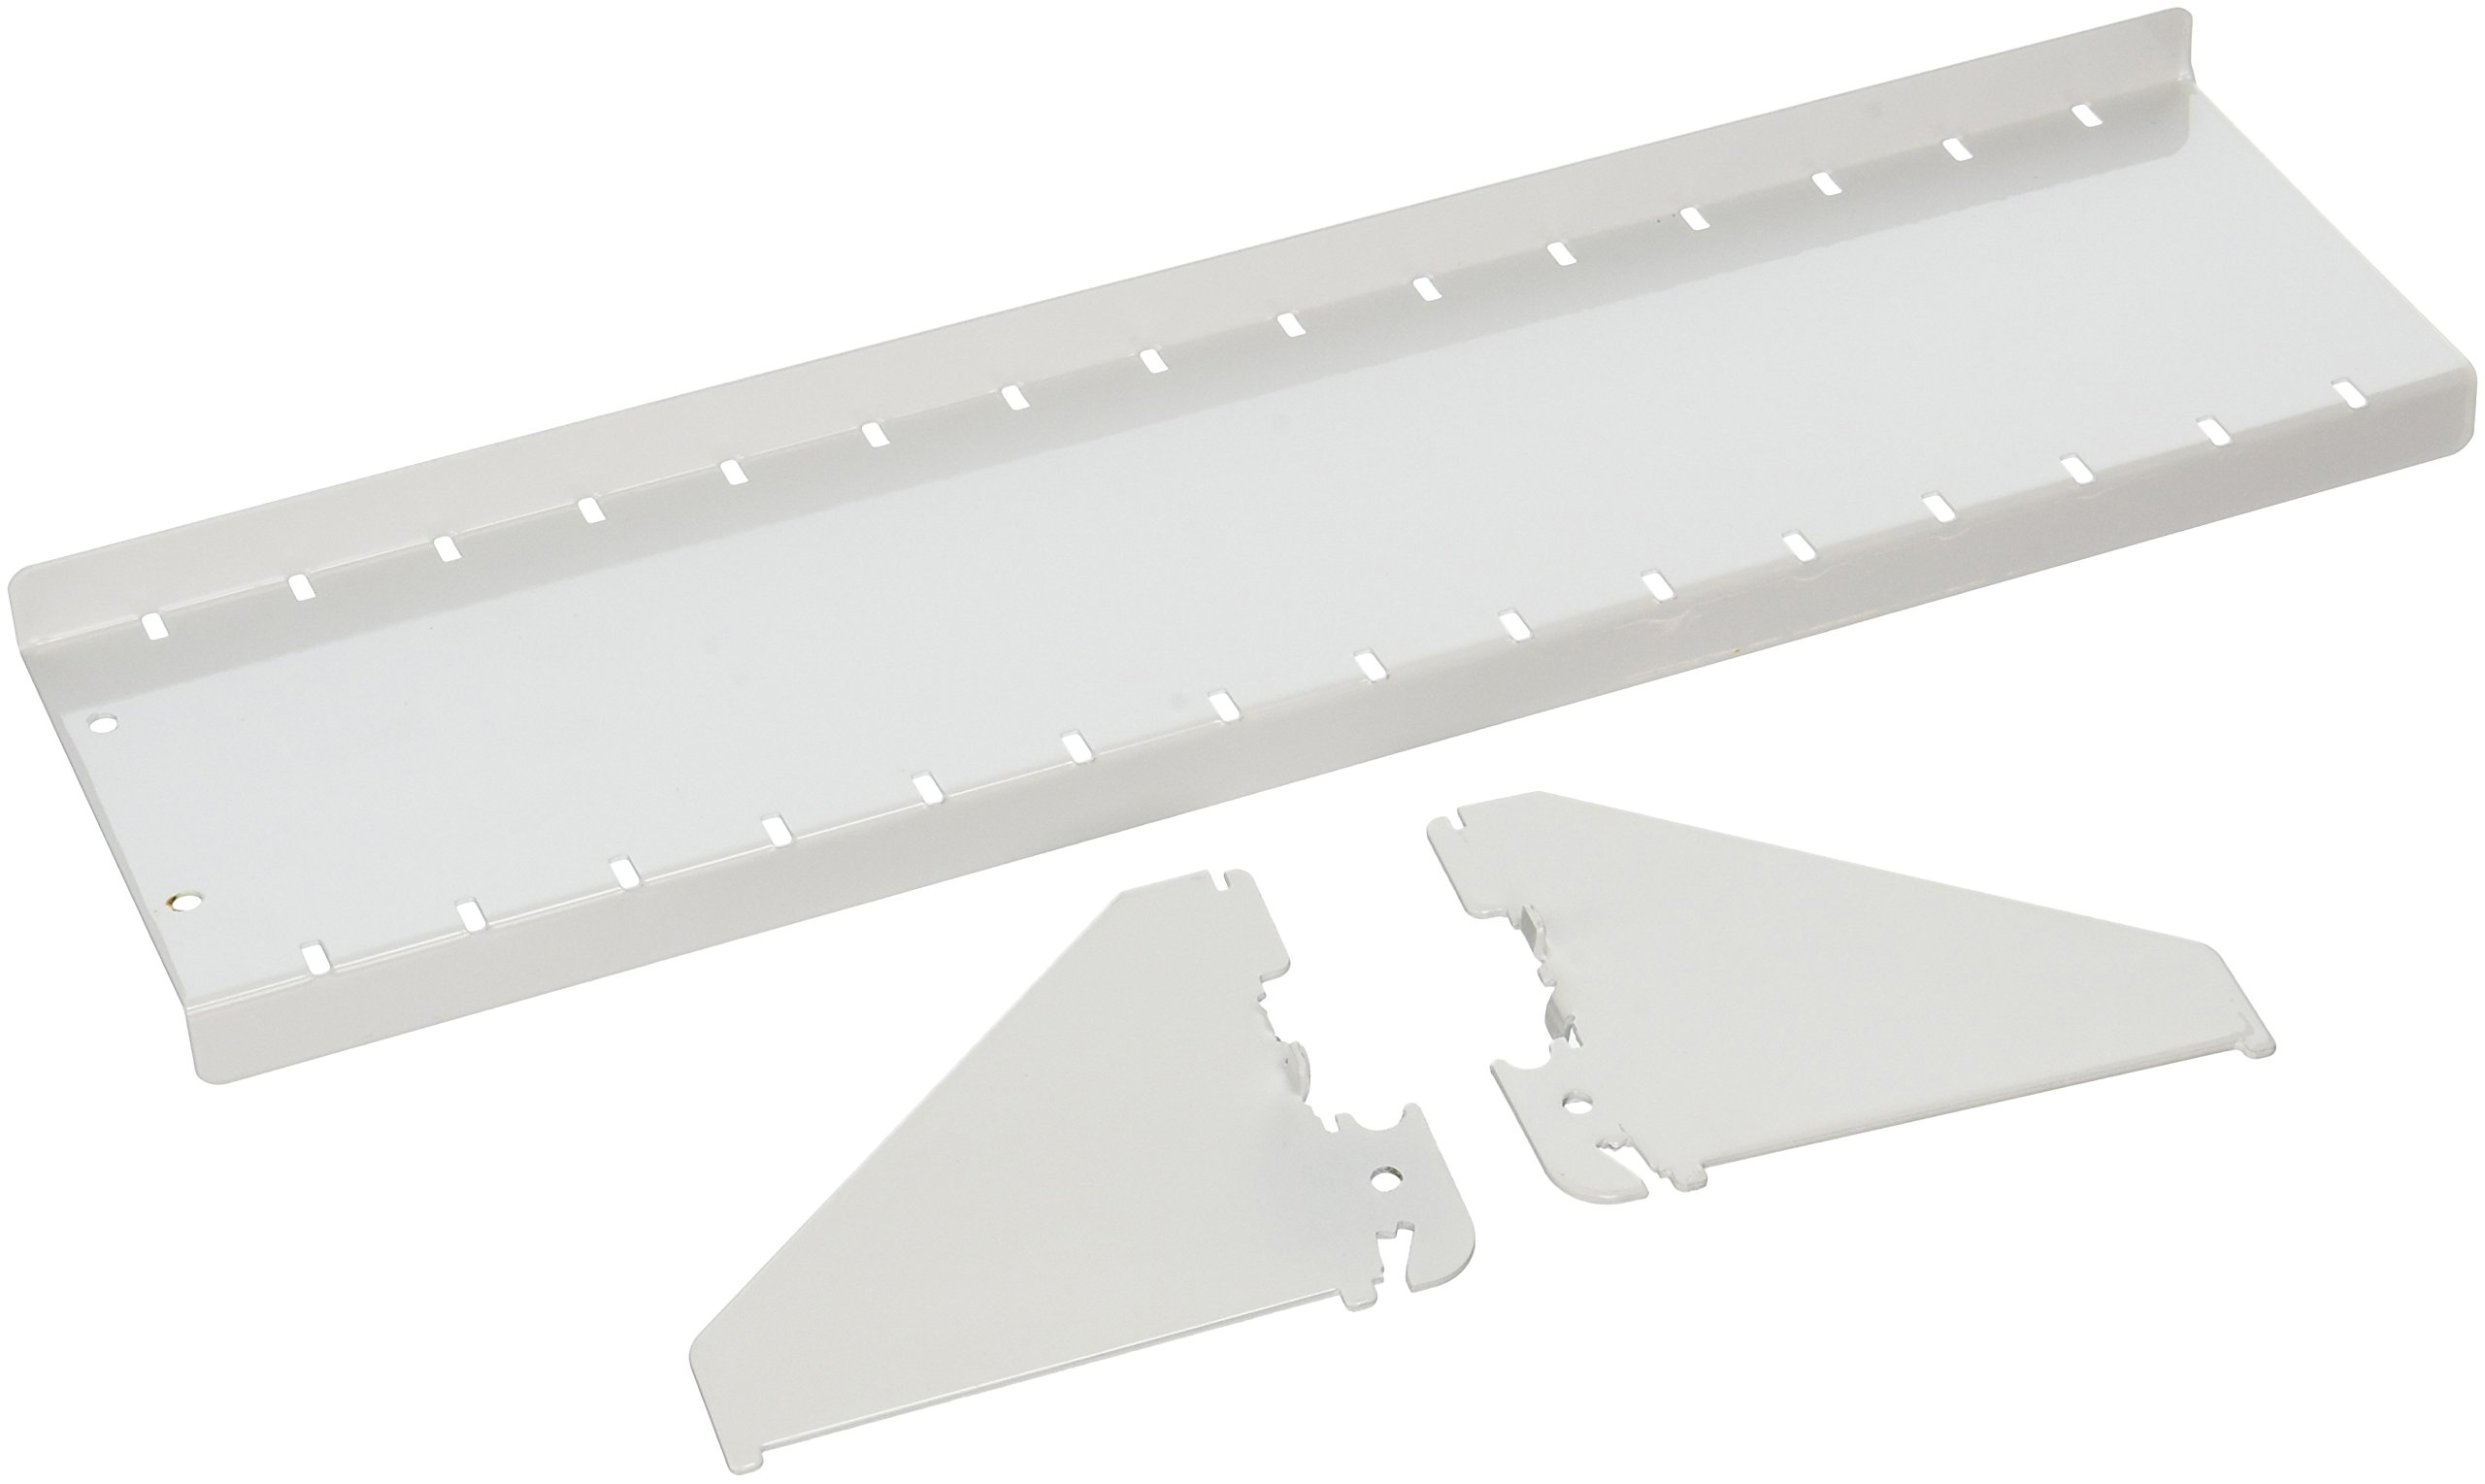 Wall Control ASM-SH-1604 W 4'' Deep Pegboard Shelf Assembly for Wall Control Pegboard Only, White